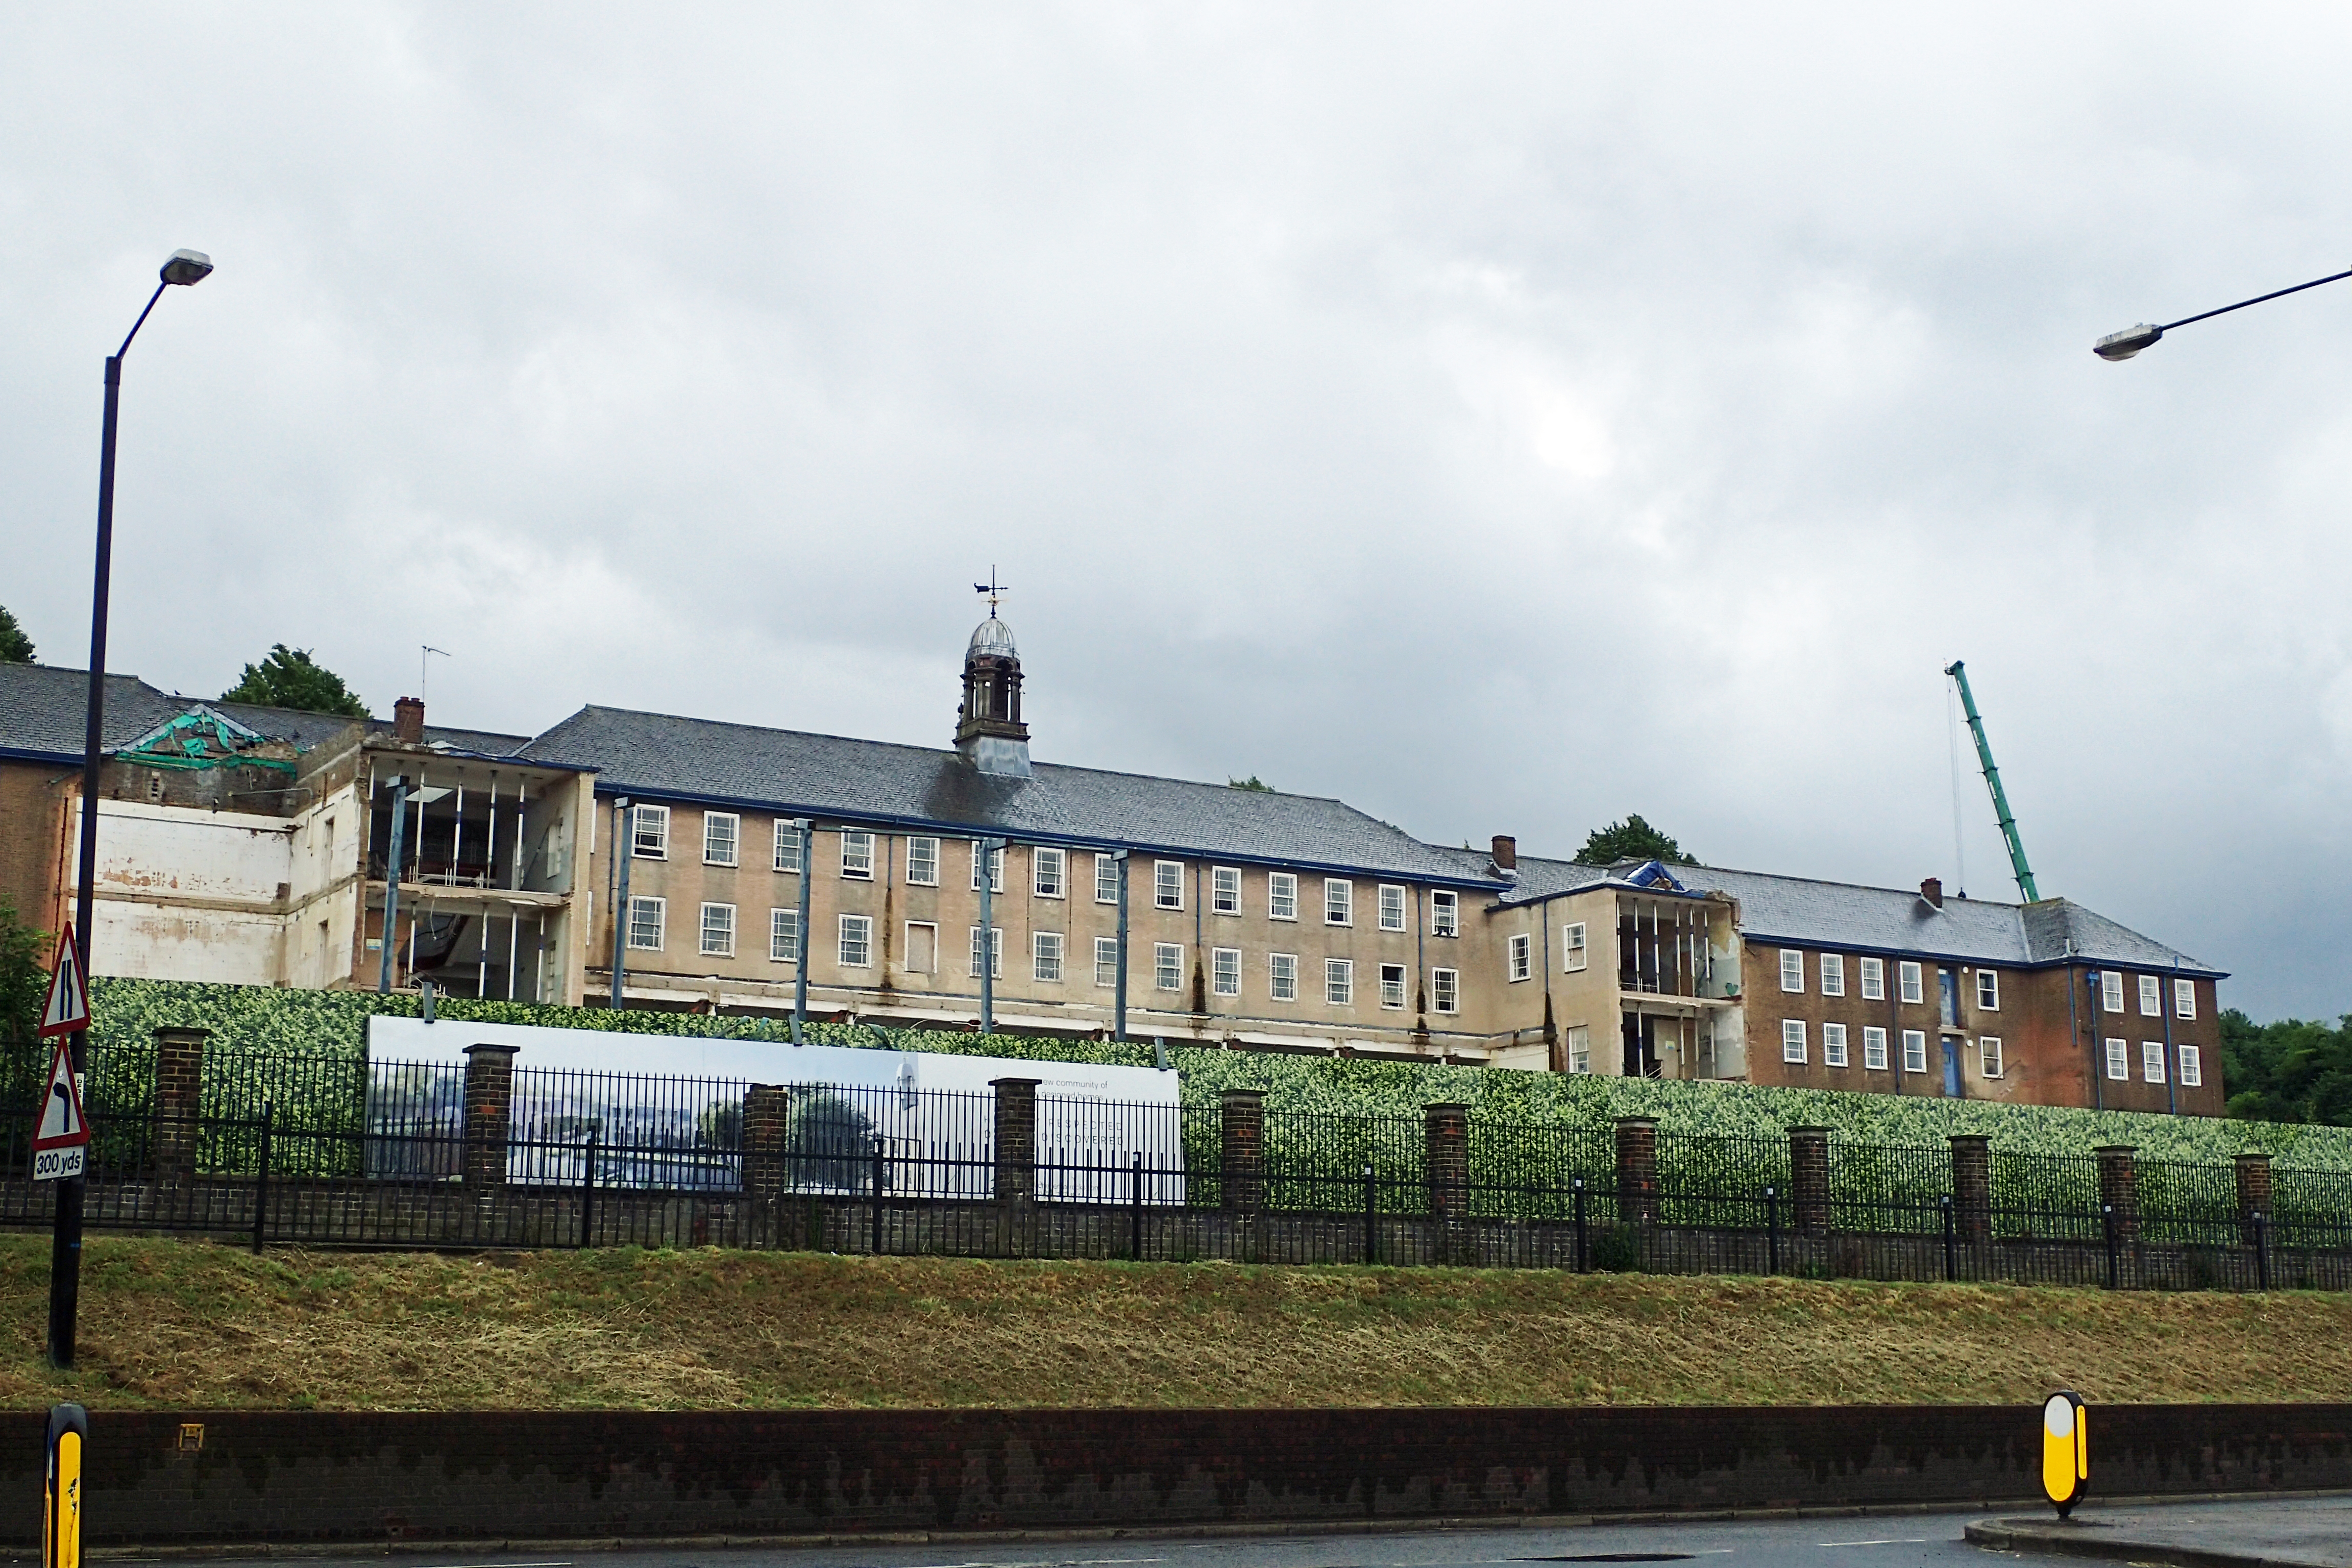 Kitchener Barracks. This block was rebuilt in the 1930s-1950s and is now a sad testament to the declining military presence in the Medway towns